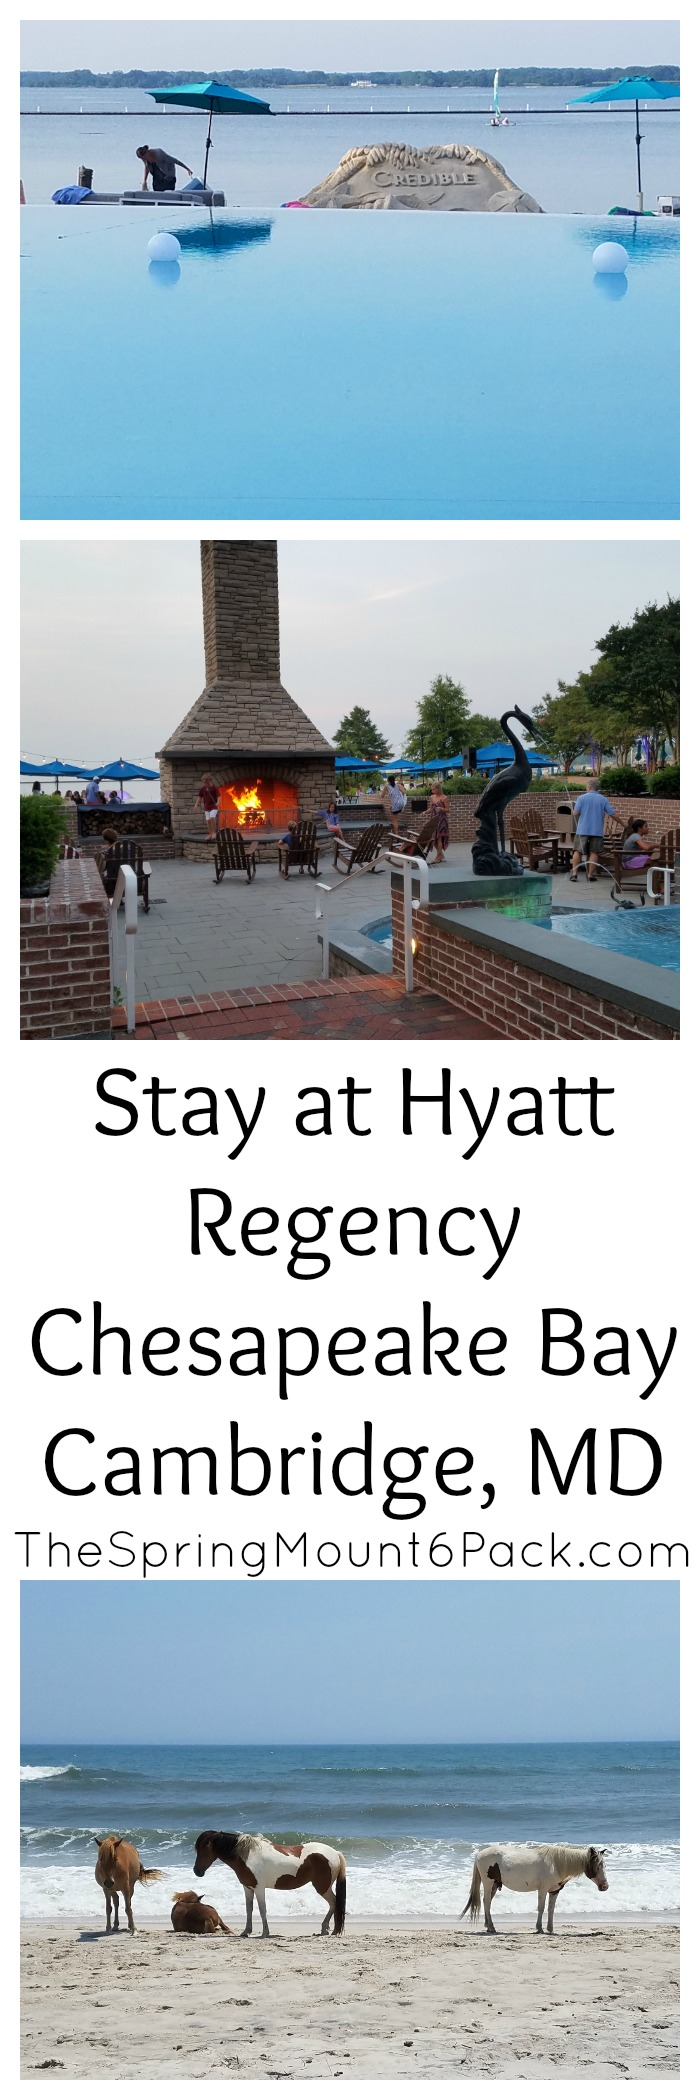 Looking for a beautiful hotel to stay at while visiting Maryland's Eastern Shores? Hyatt Regency Chesapeake Bay has plenty to offer.